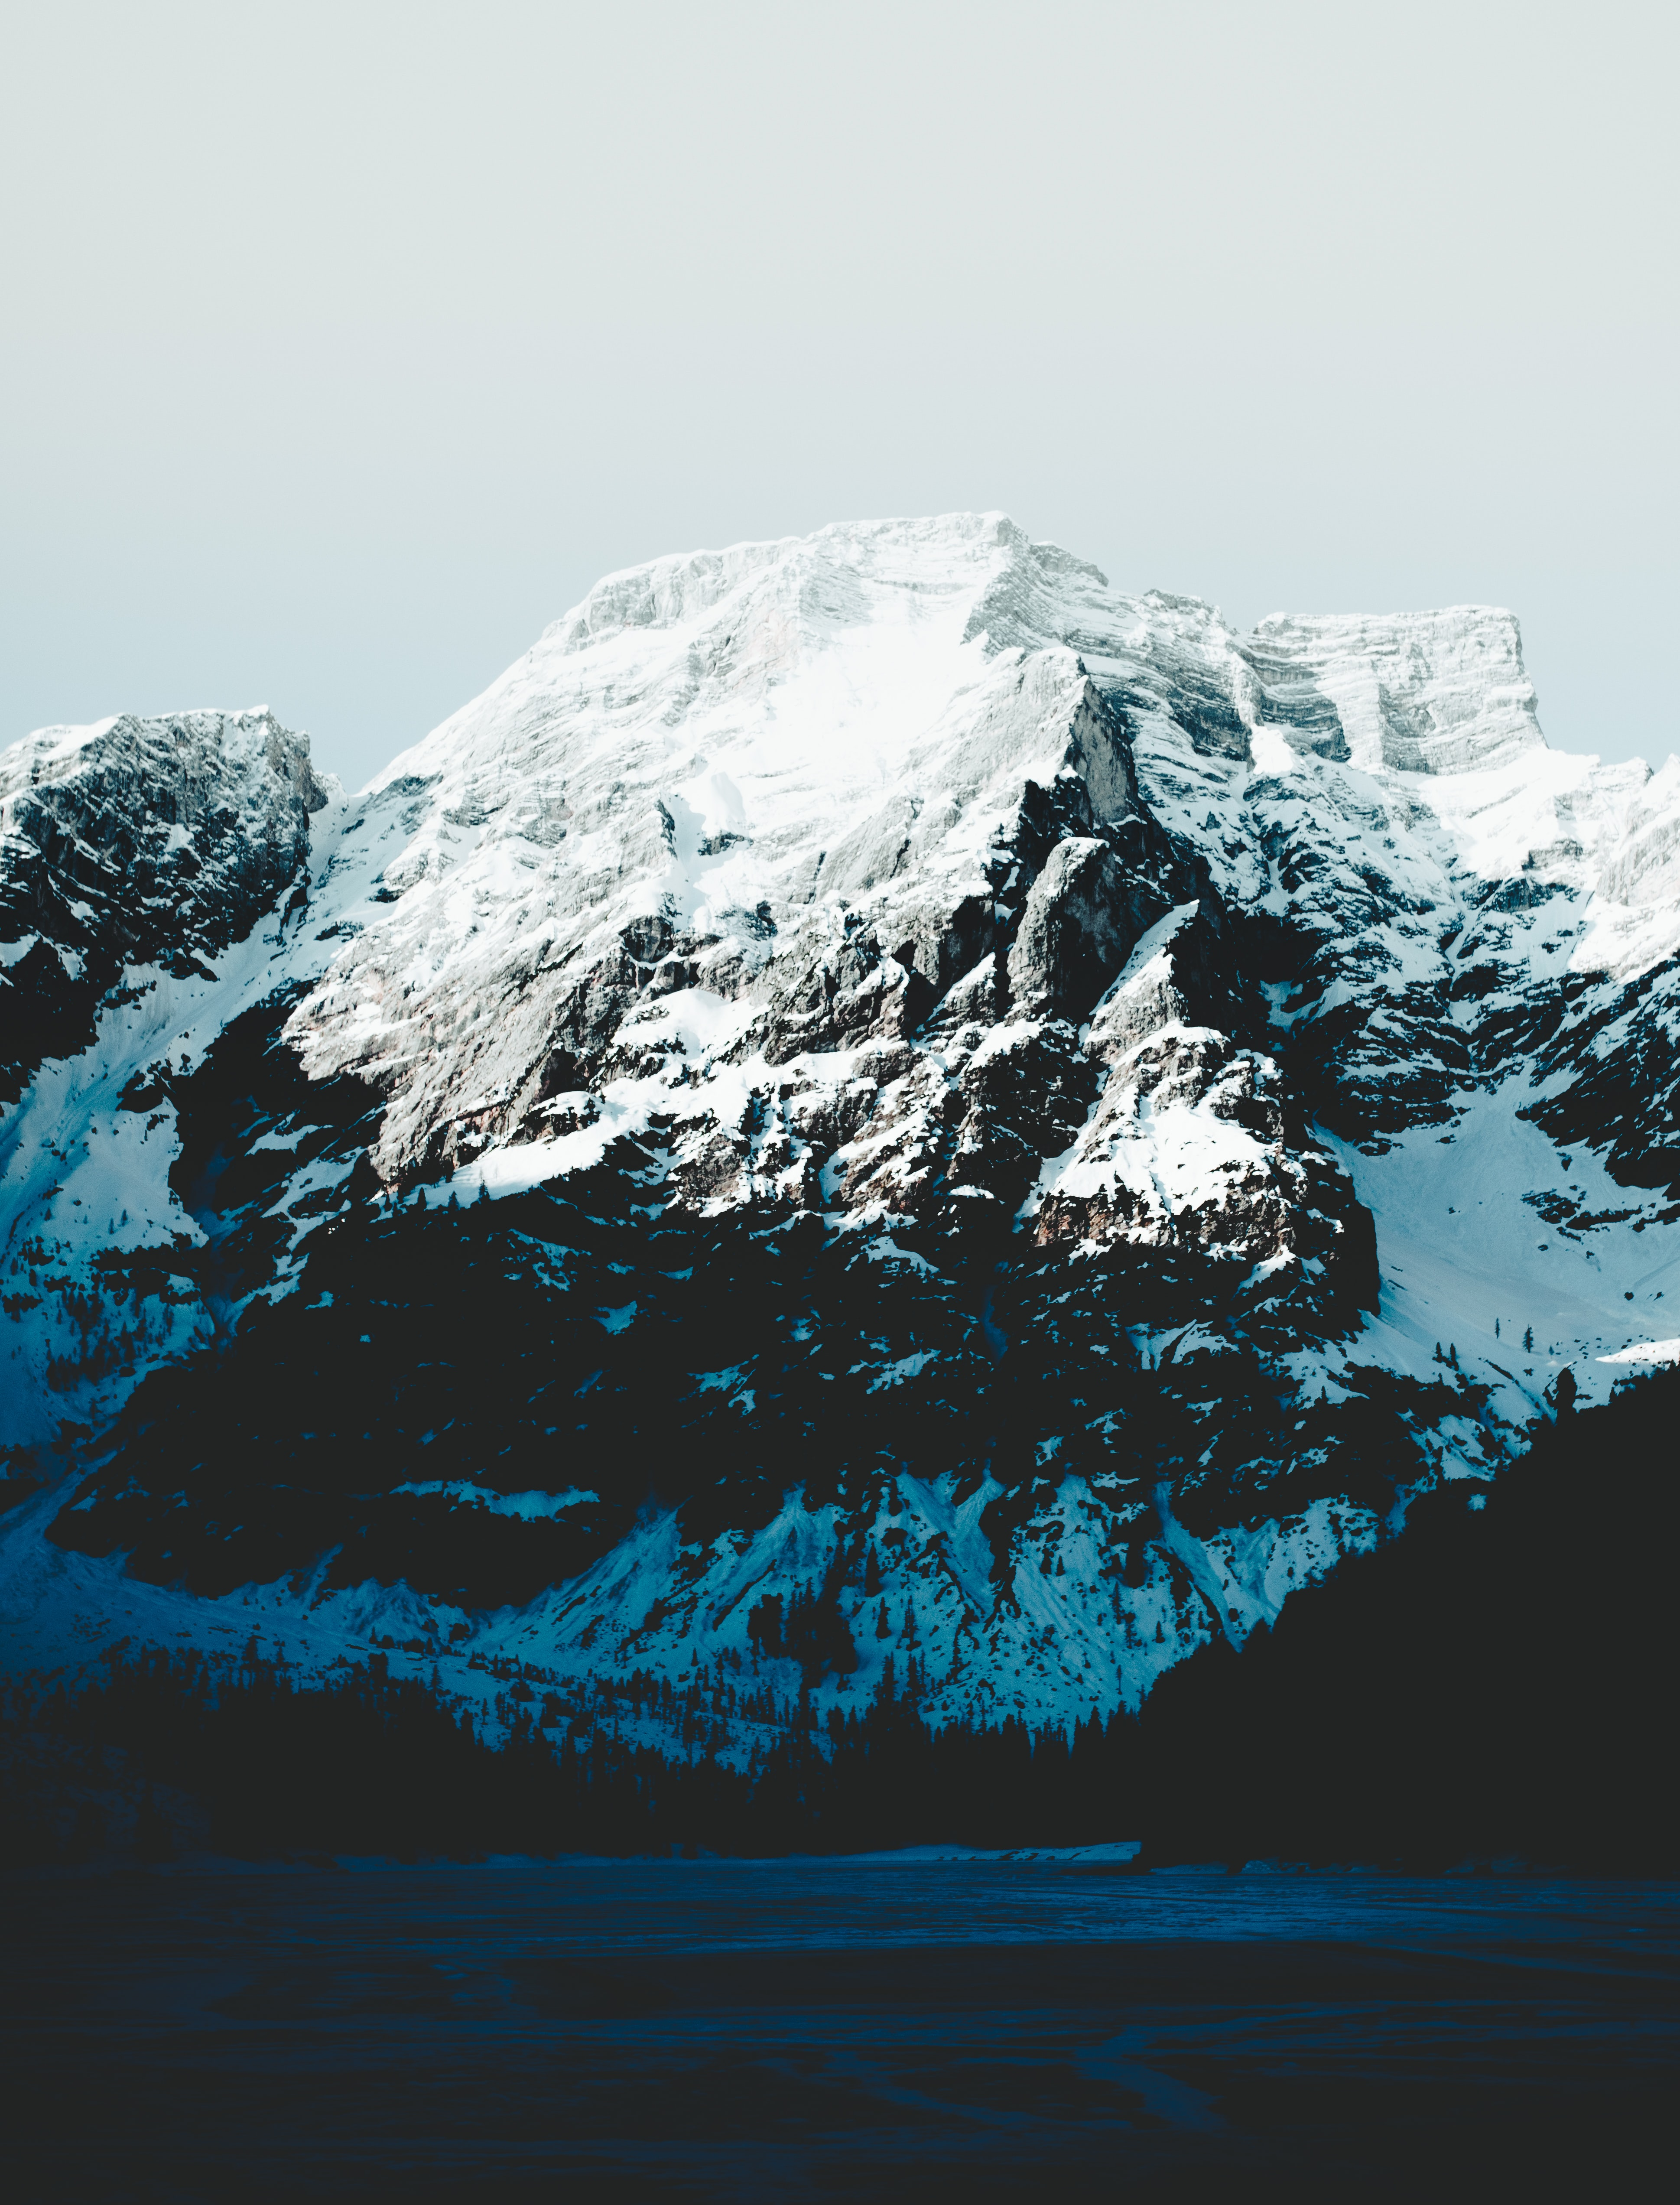 snow-capped mountain under gray sky